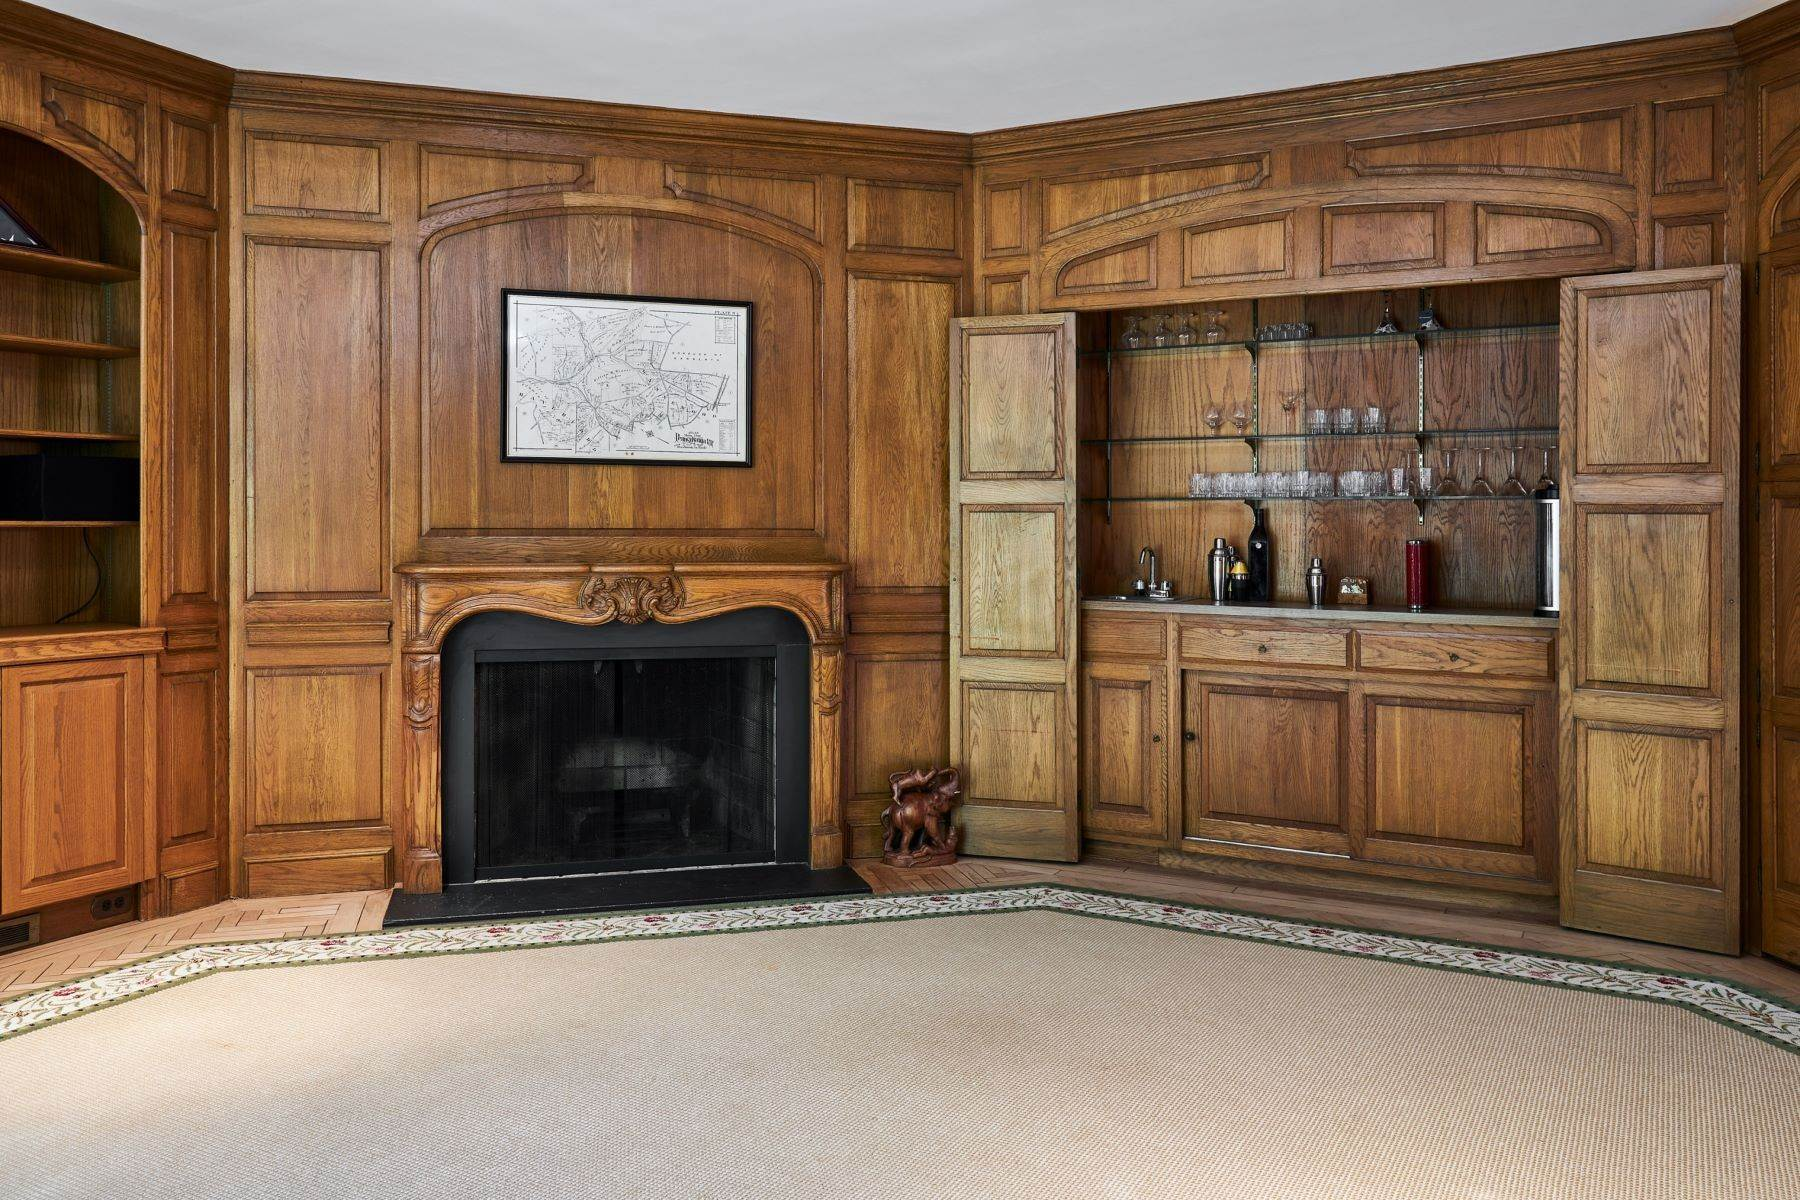 15. Single Family Homes for Sale at Stunning French Manor Home 342 GRAYS LN Haverford, Pennsylvania 19041 United States